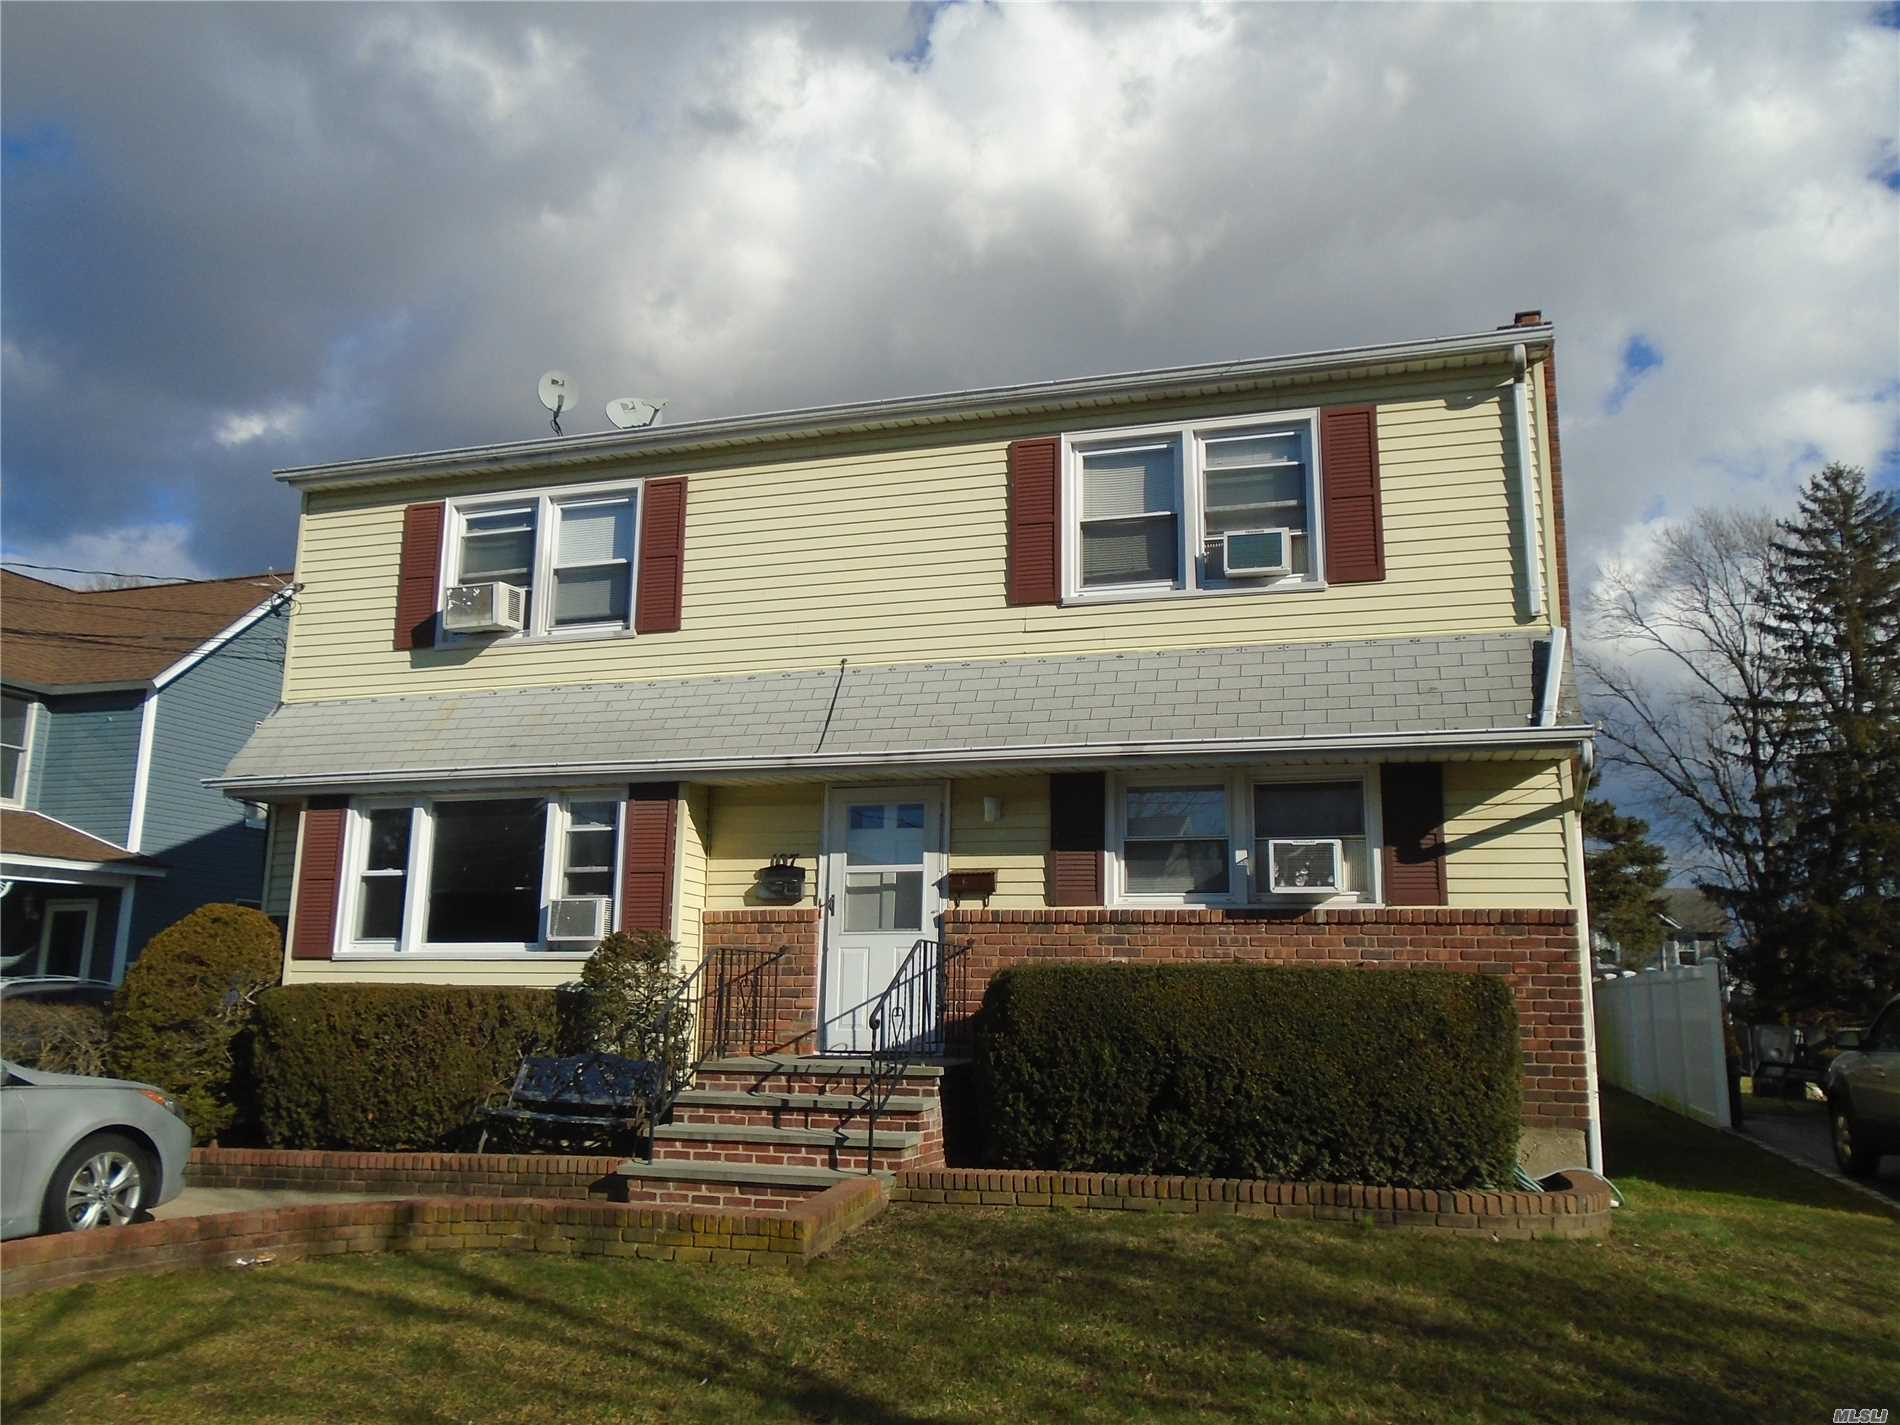 Legal 2 In Village Of Farmingdale. 5 Over 5 With Full Fin Bsmt Ose. 150 Deep Yard. Parking In Driveway And Front Of House. Great Investment Or Multi Family. Co Attached To Listing.